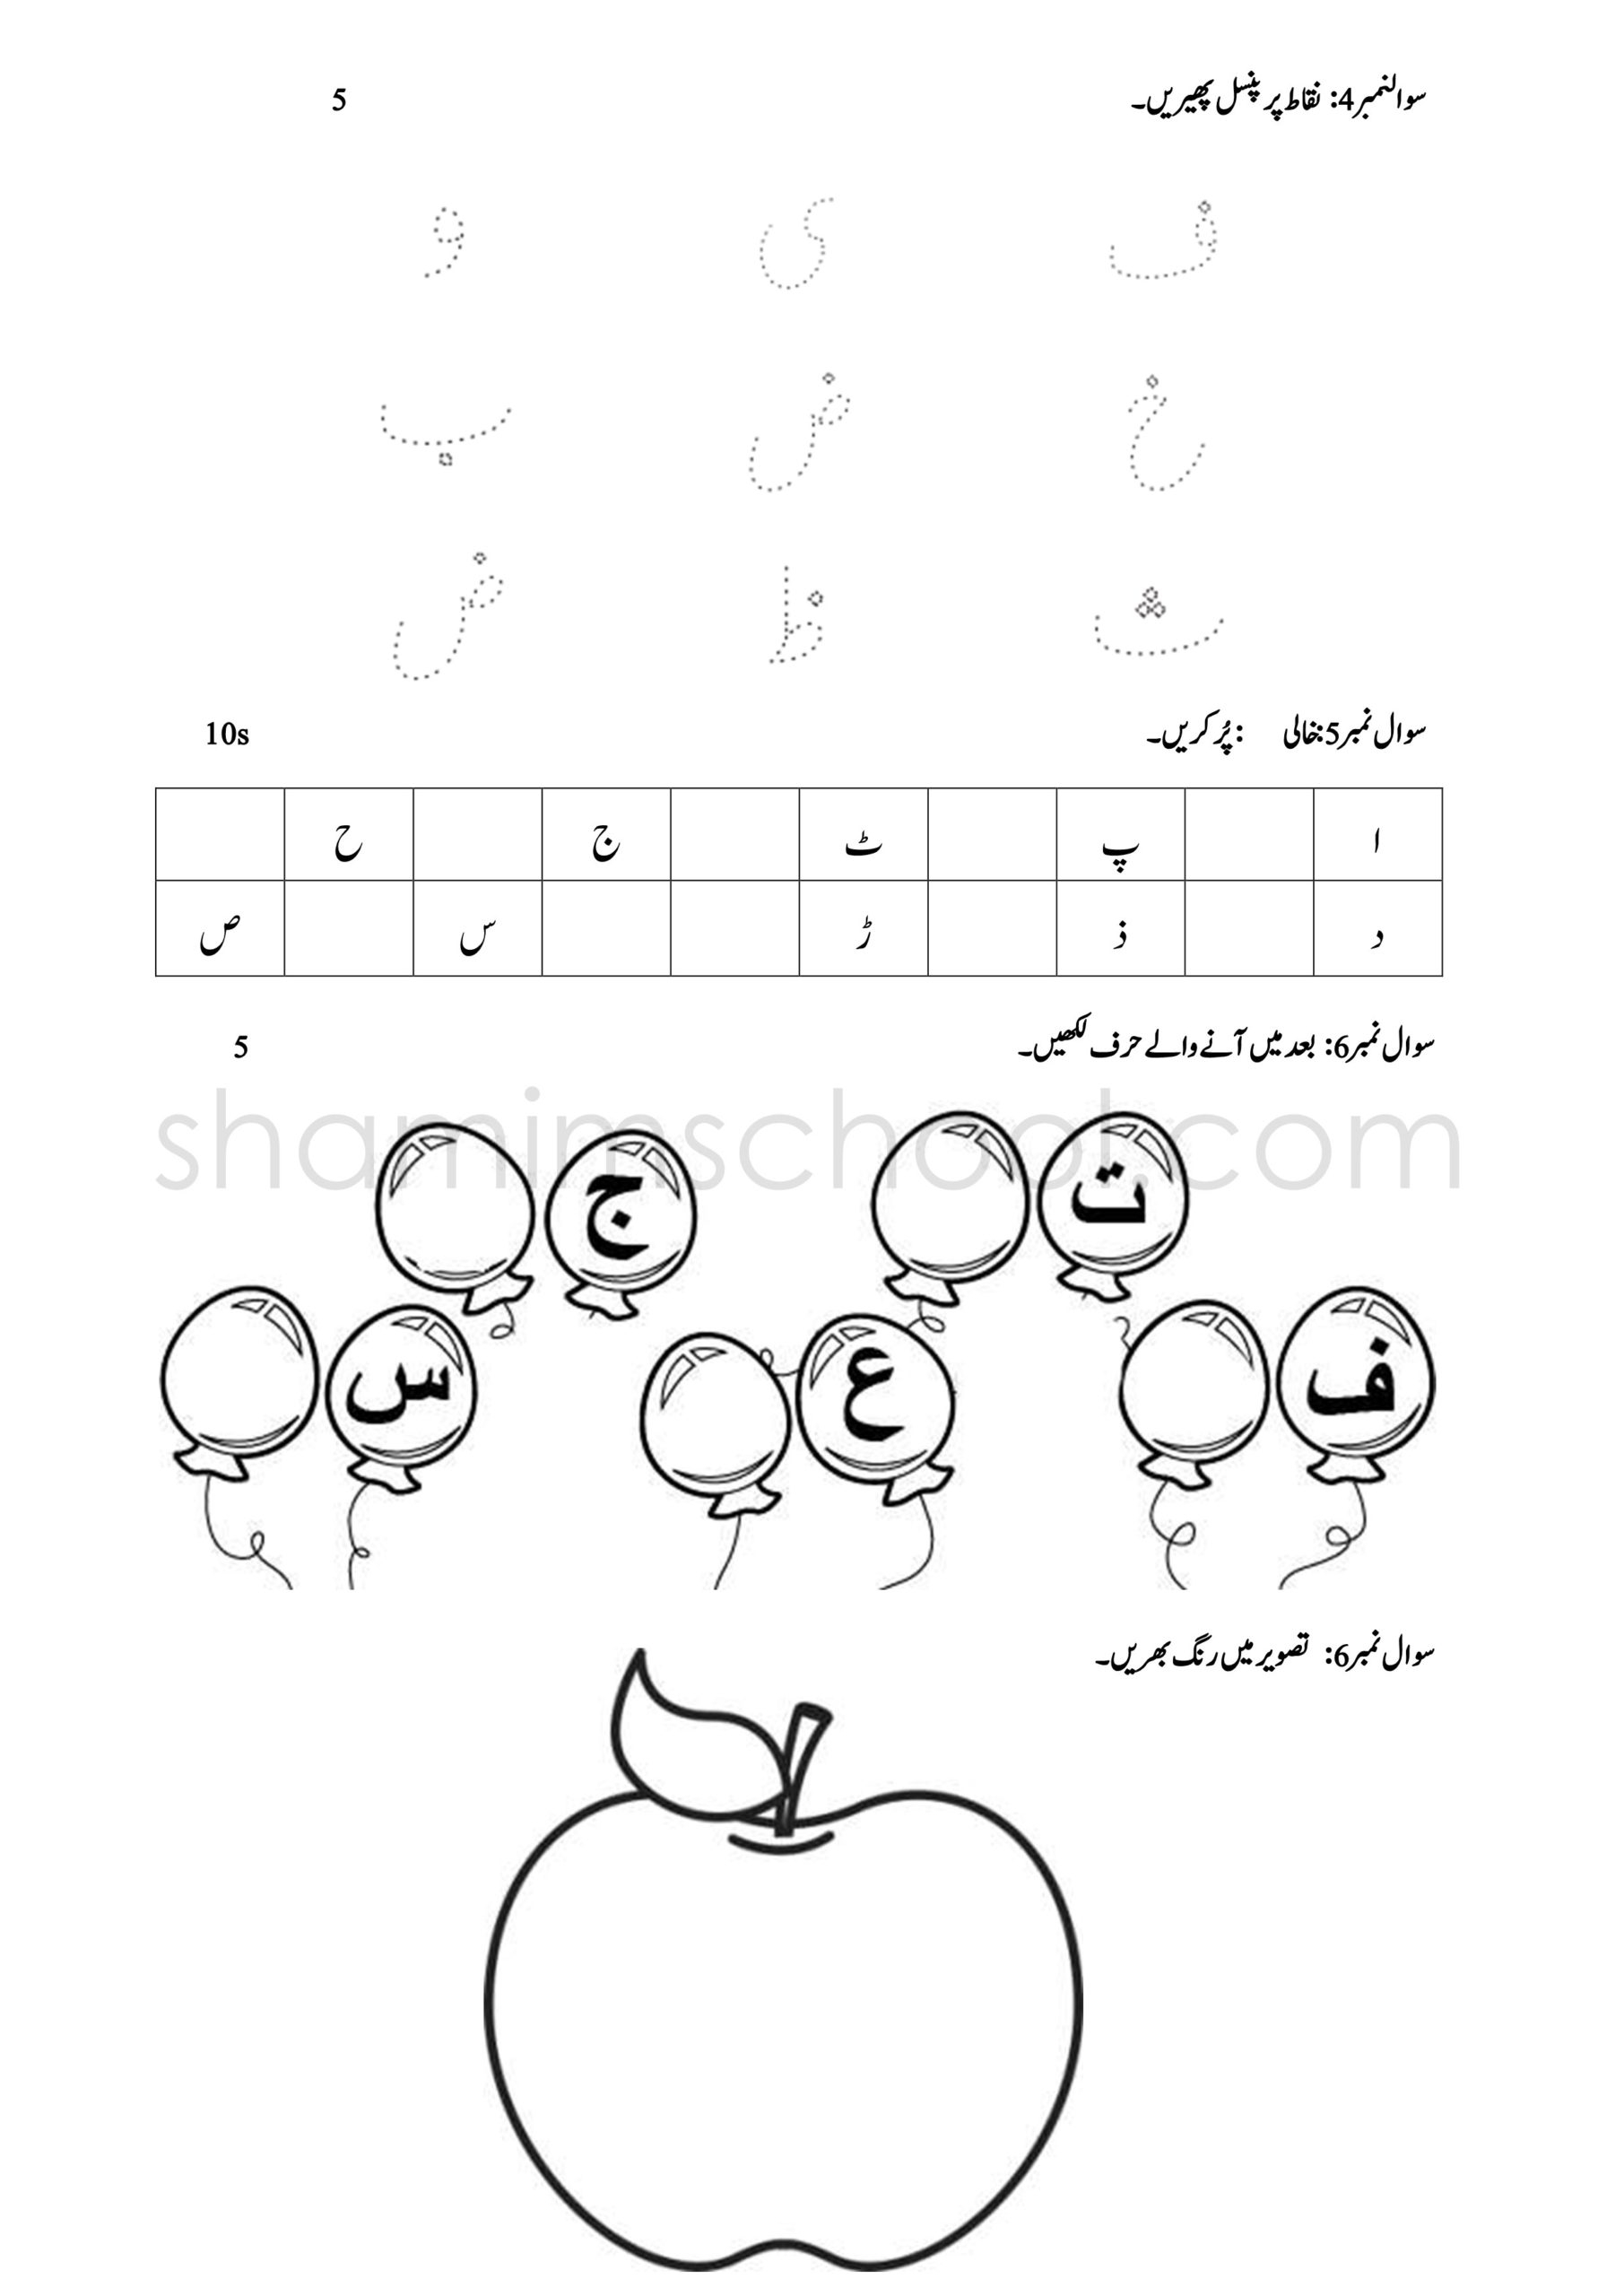 Free Printable Urdu Worksheets For Nursery Shamim Grammar with regard to Alphabet Urdu Worksheets Pdf